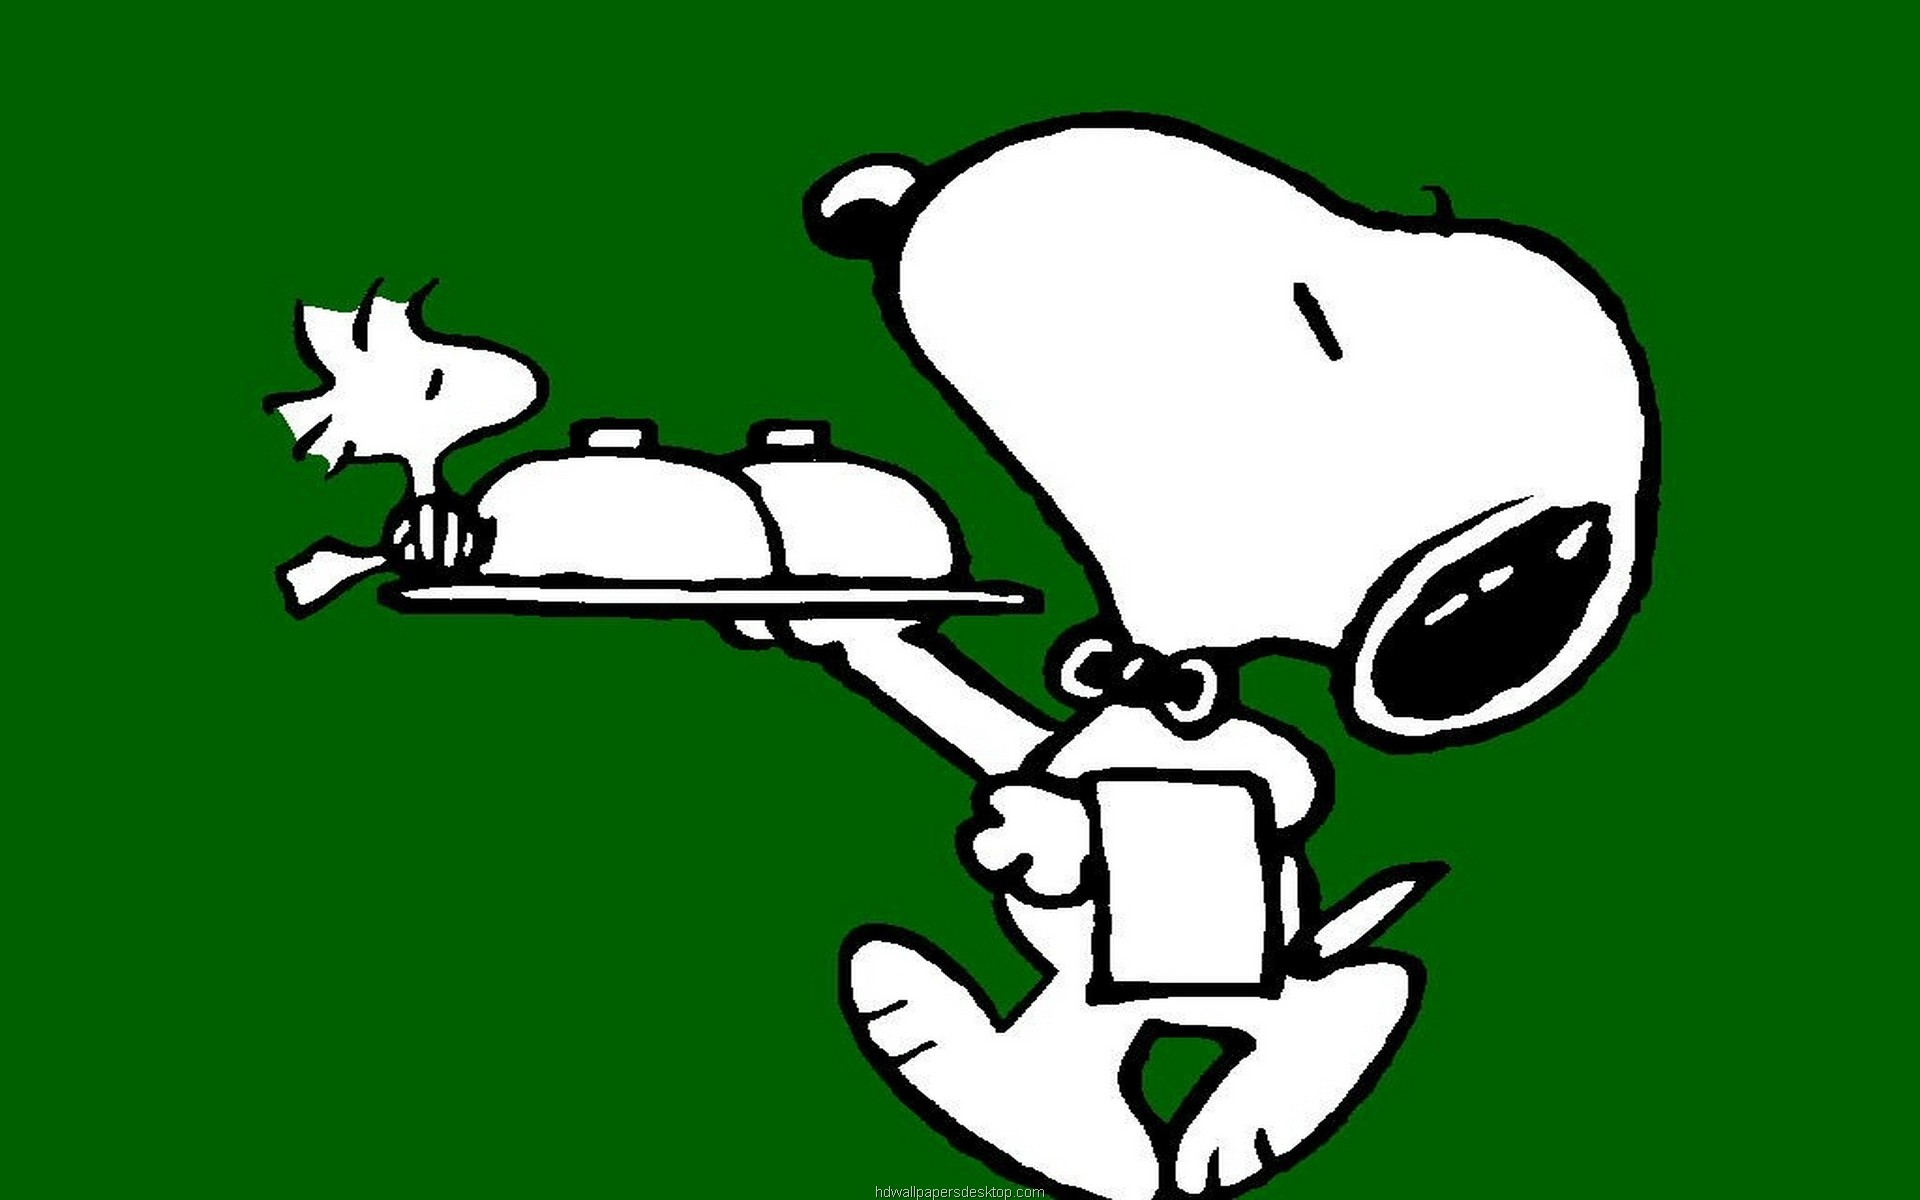 Snoopy Wallpapers , Snoopy Wallpaper 1